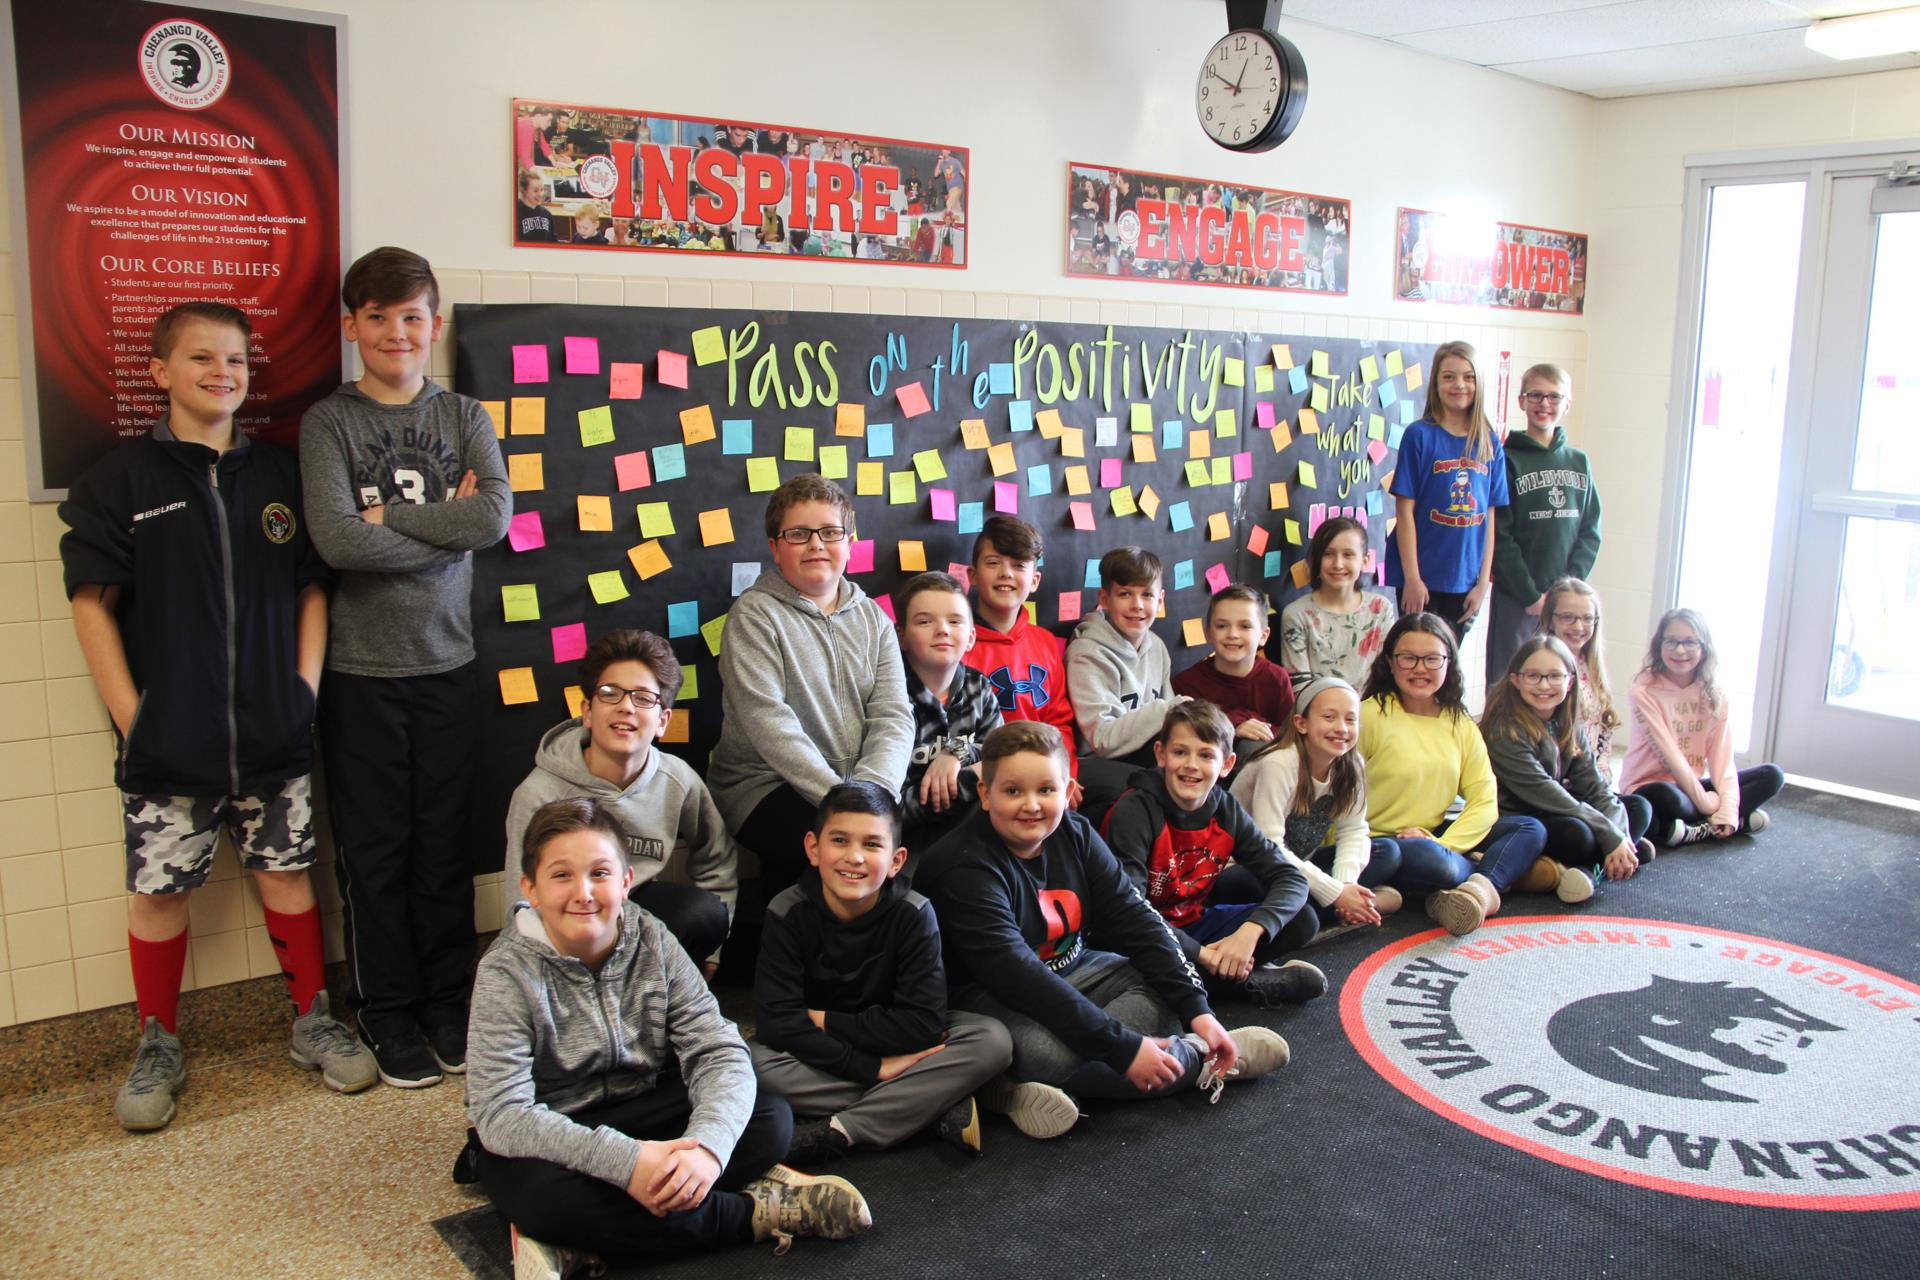 fifth grade student council members next to pass on the positivity wall